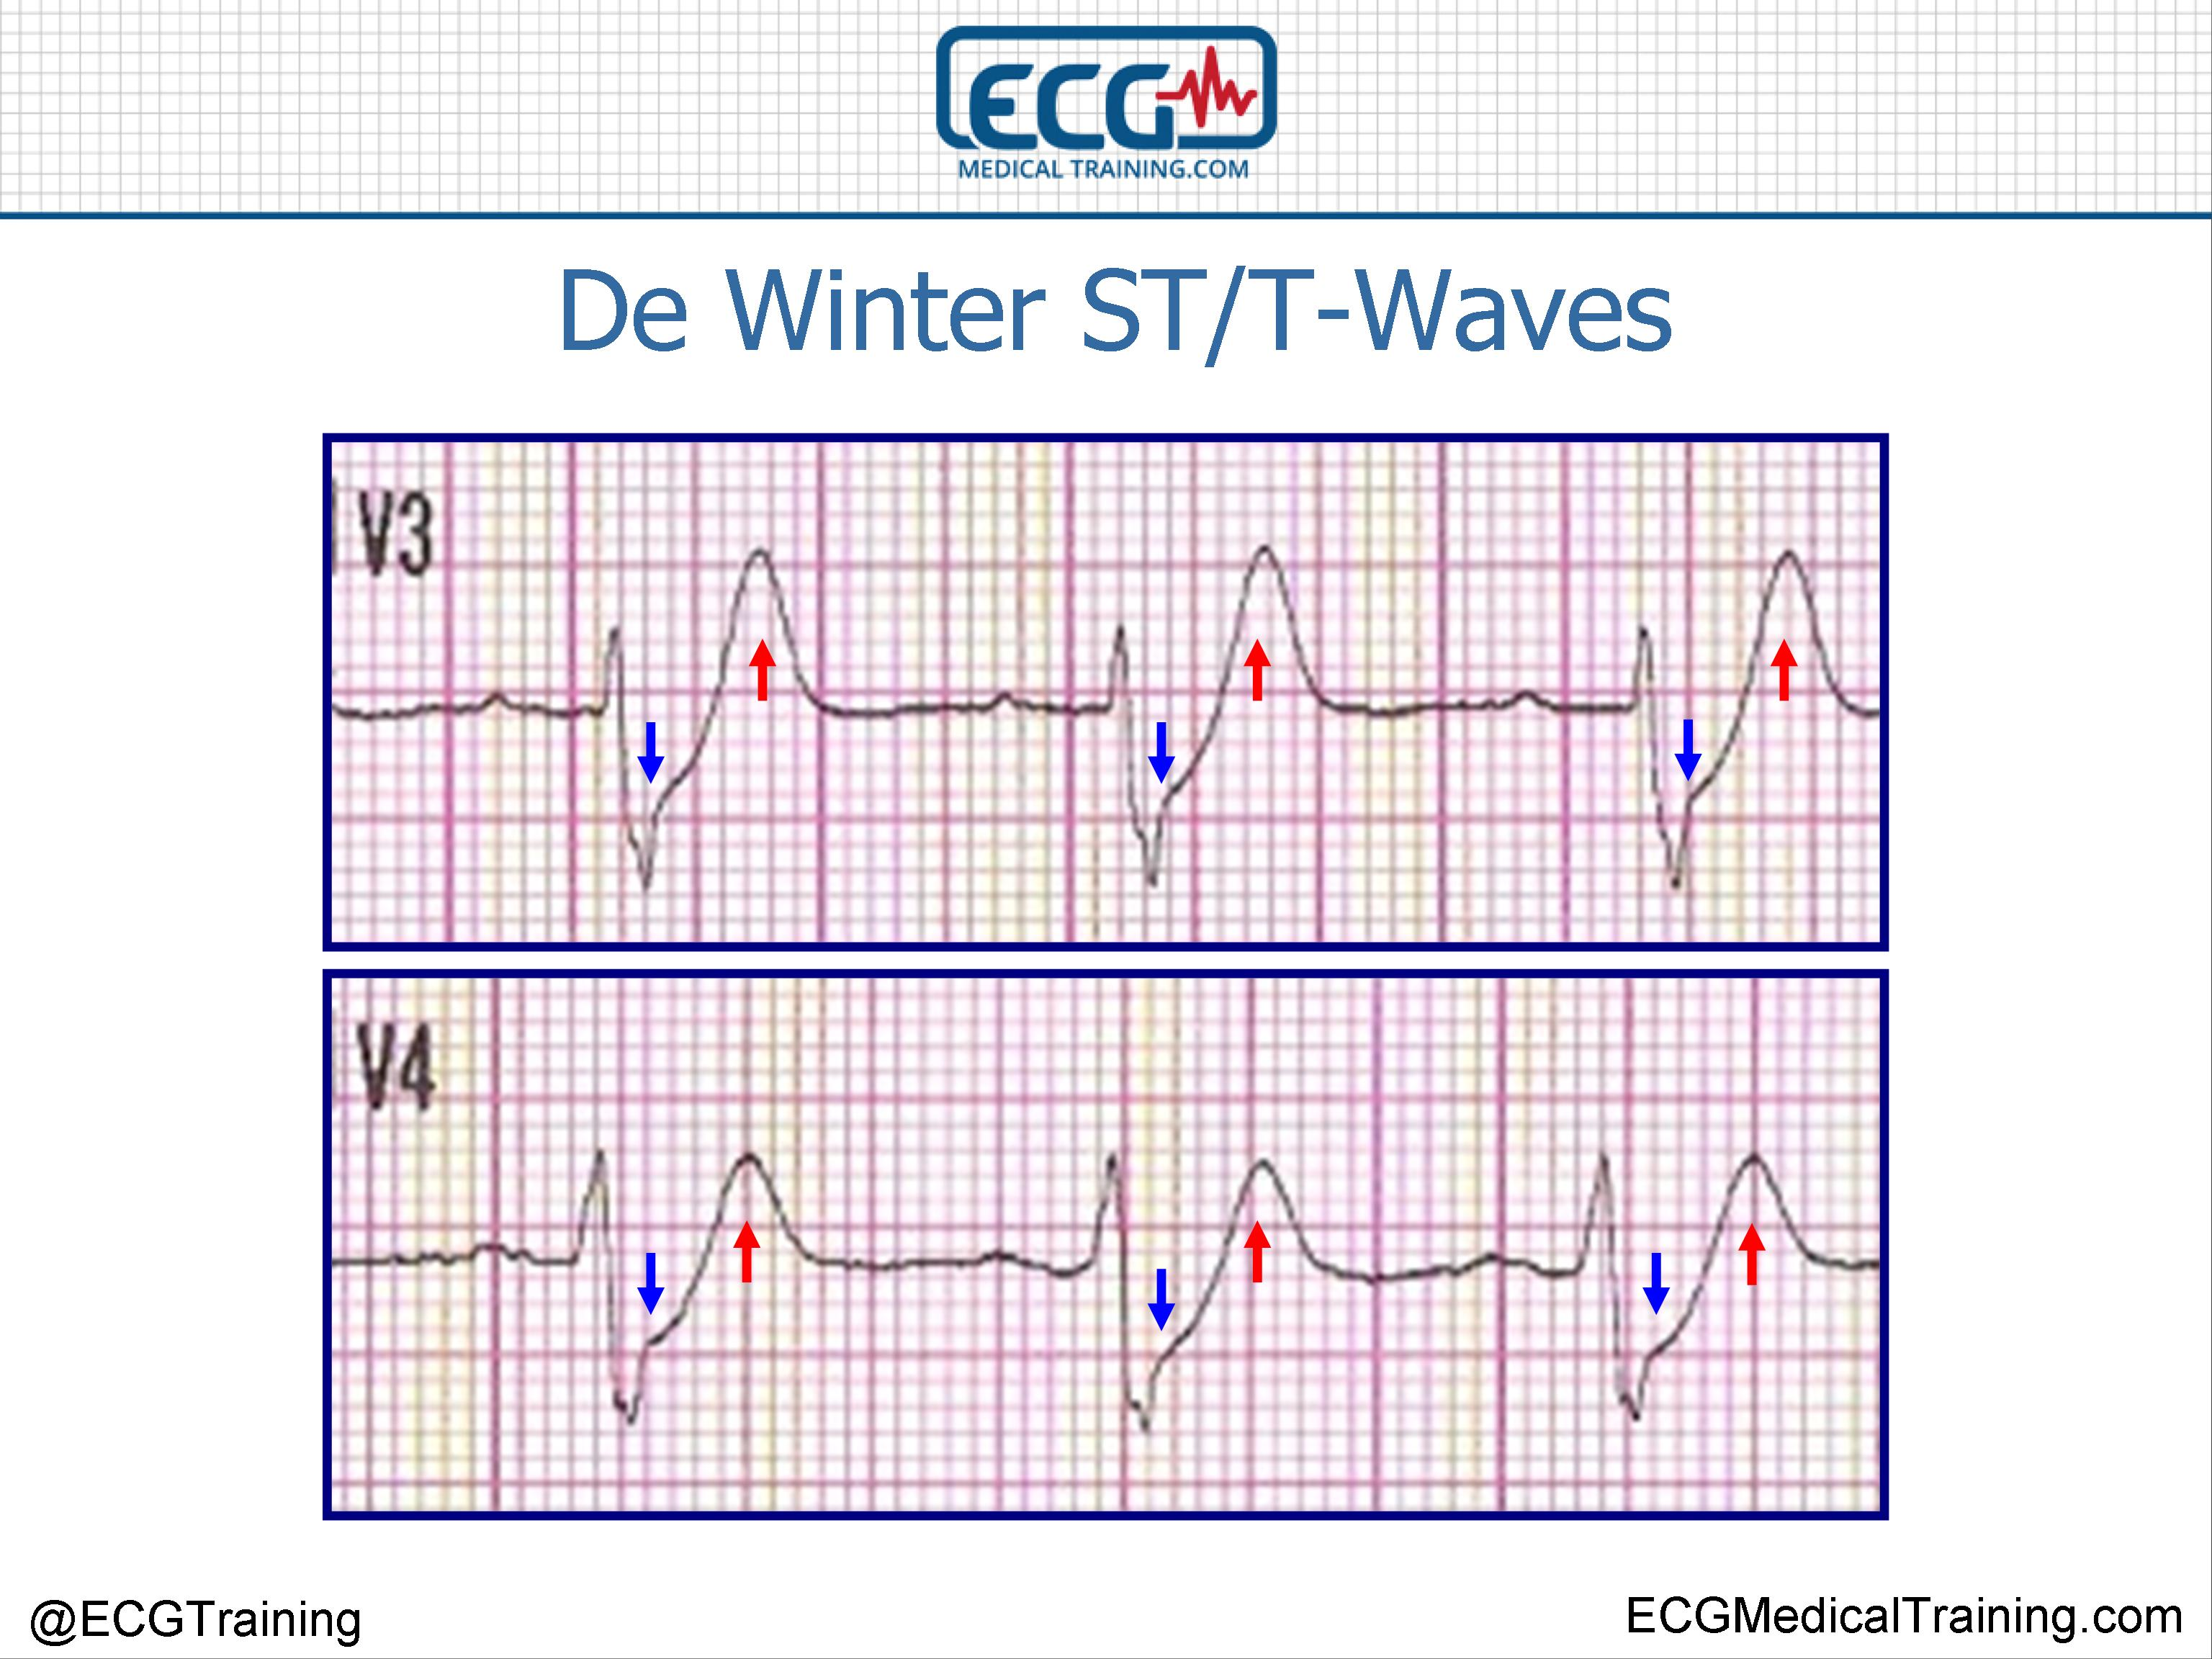 De Winter St T Waves Ecg Medical Training Electrocardiogram Diagram Electrocar Diogram Wineter Graphic